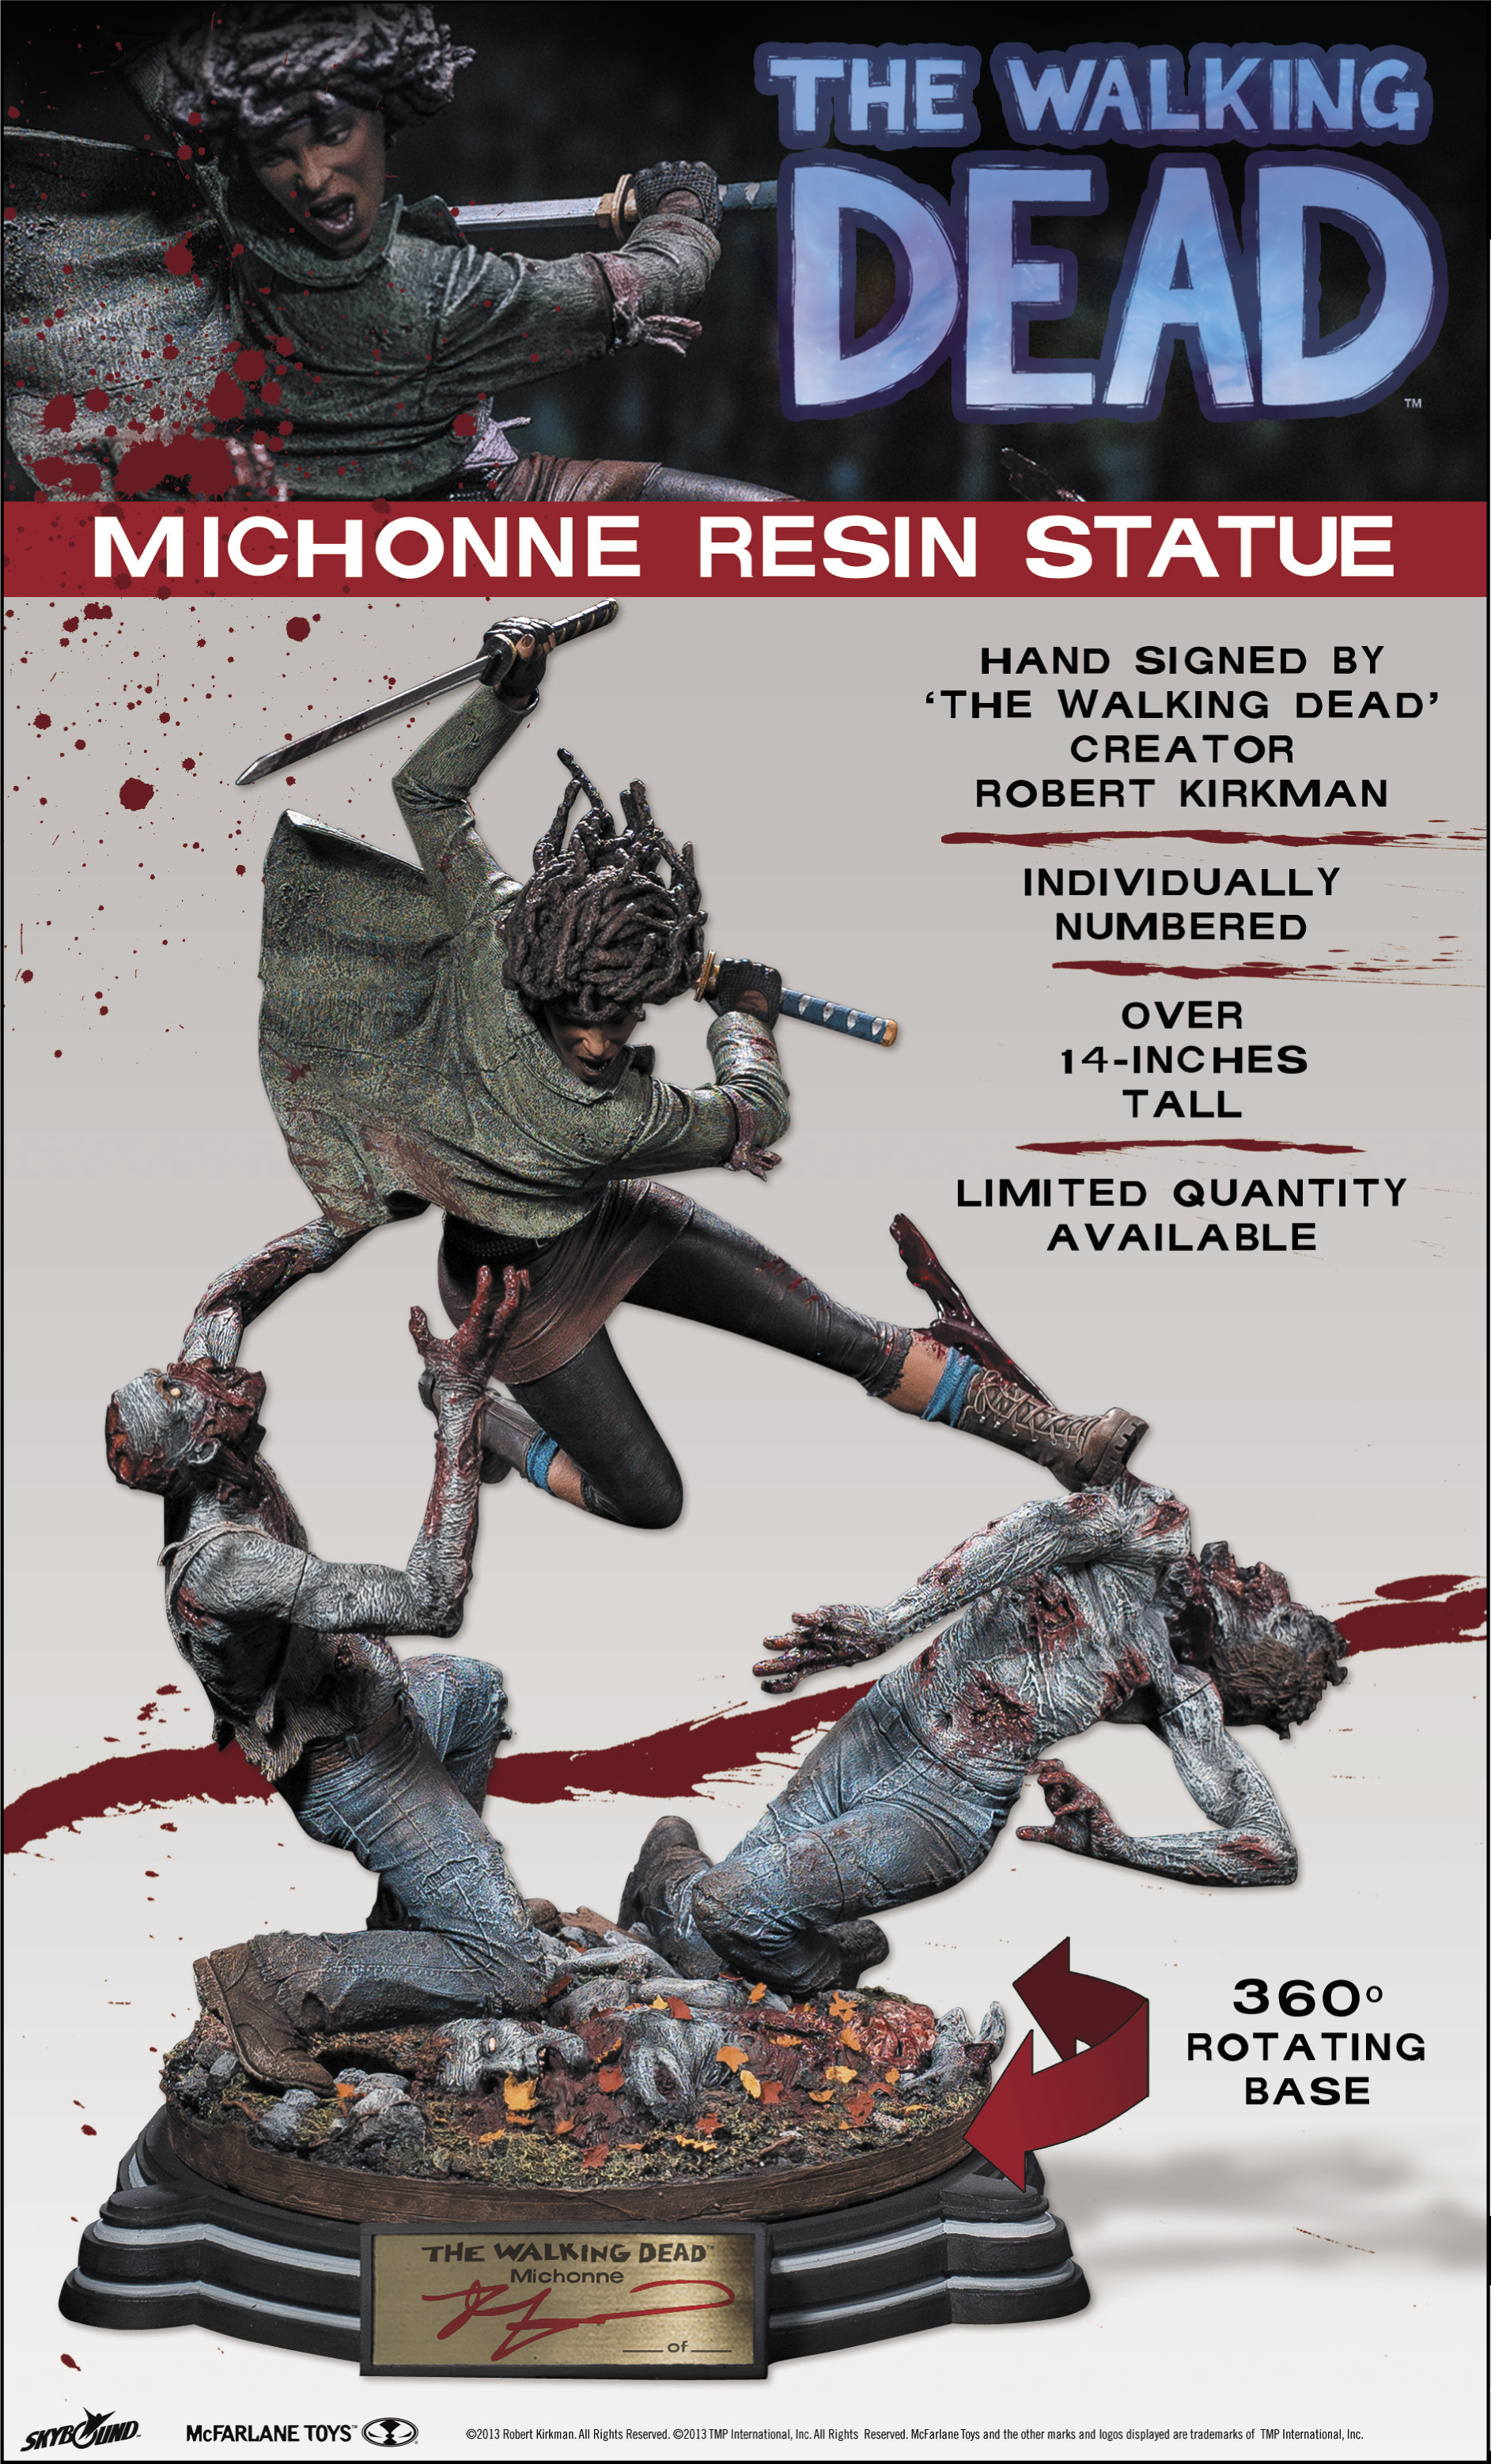 WALKING DEAD MICHONNE RESIN STATUE